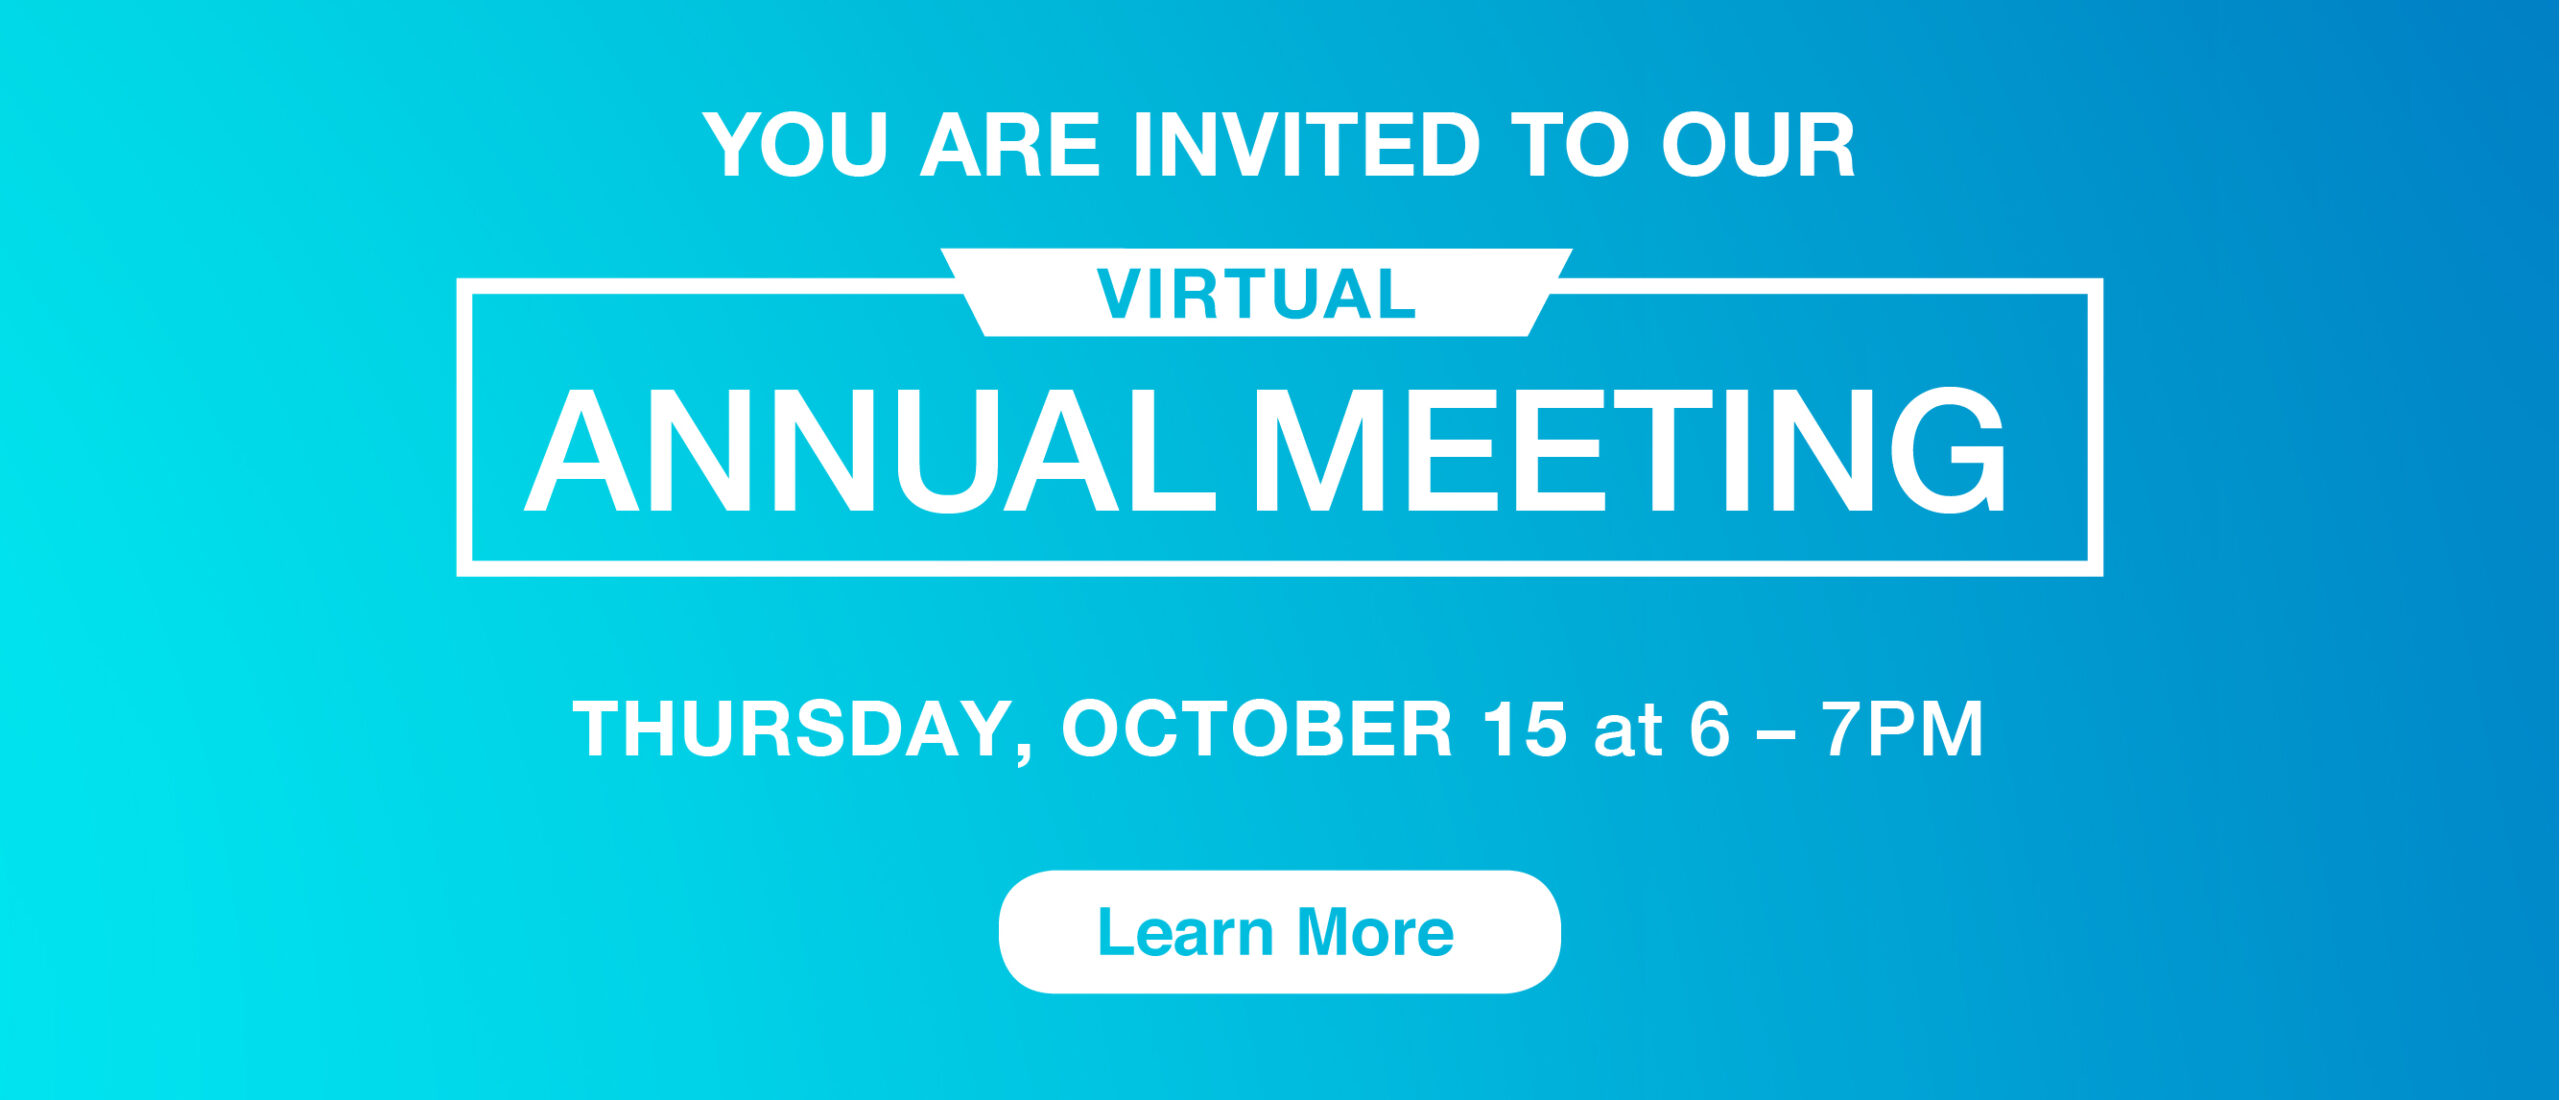 blue gradient background with white text you are invited to our virtual annual meeting Thursday, October 15 at 6 - 7 PM and a white learn more button